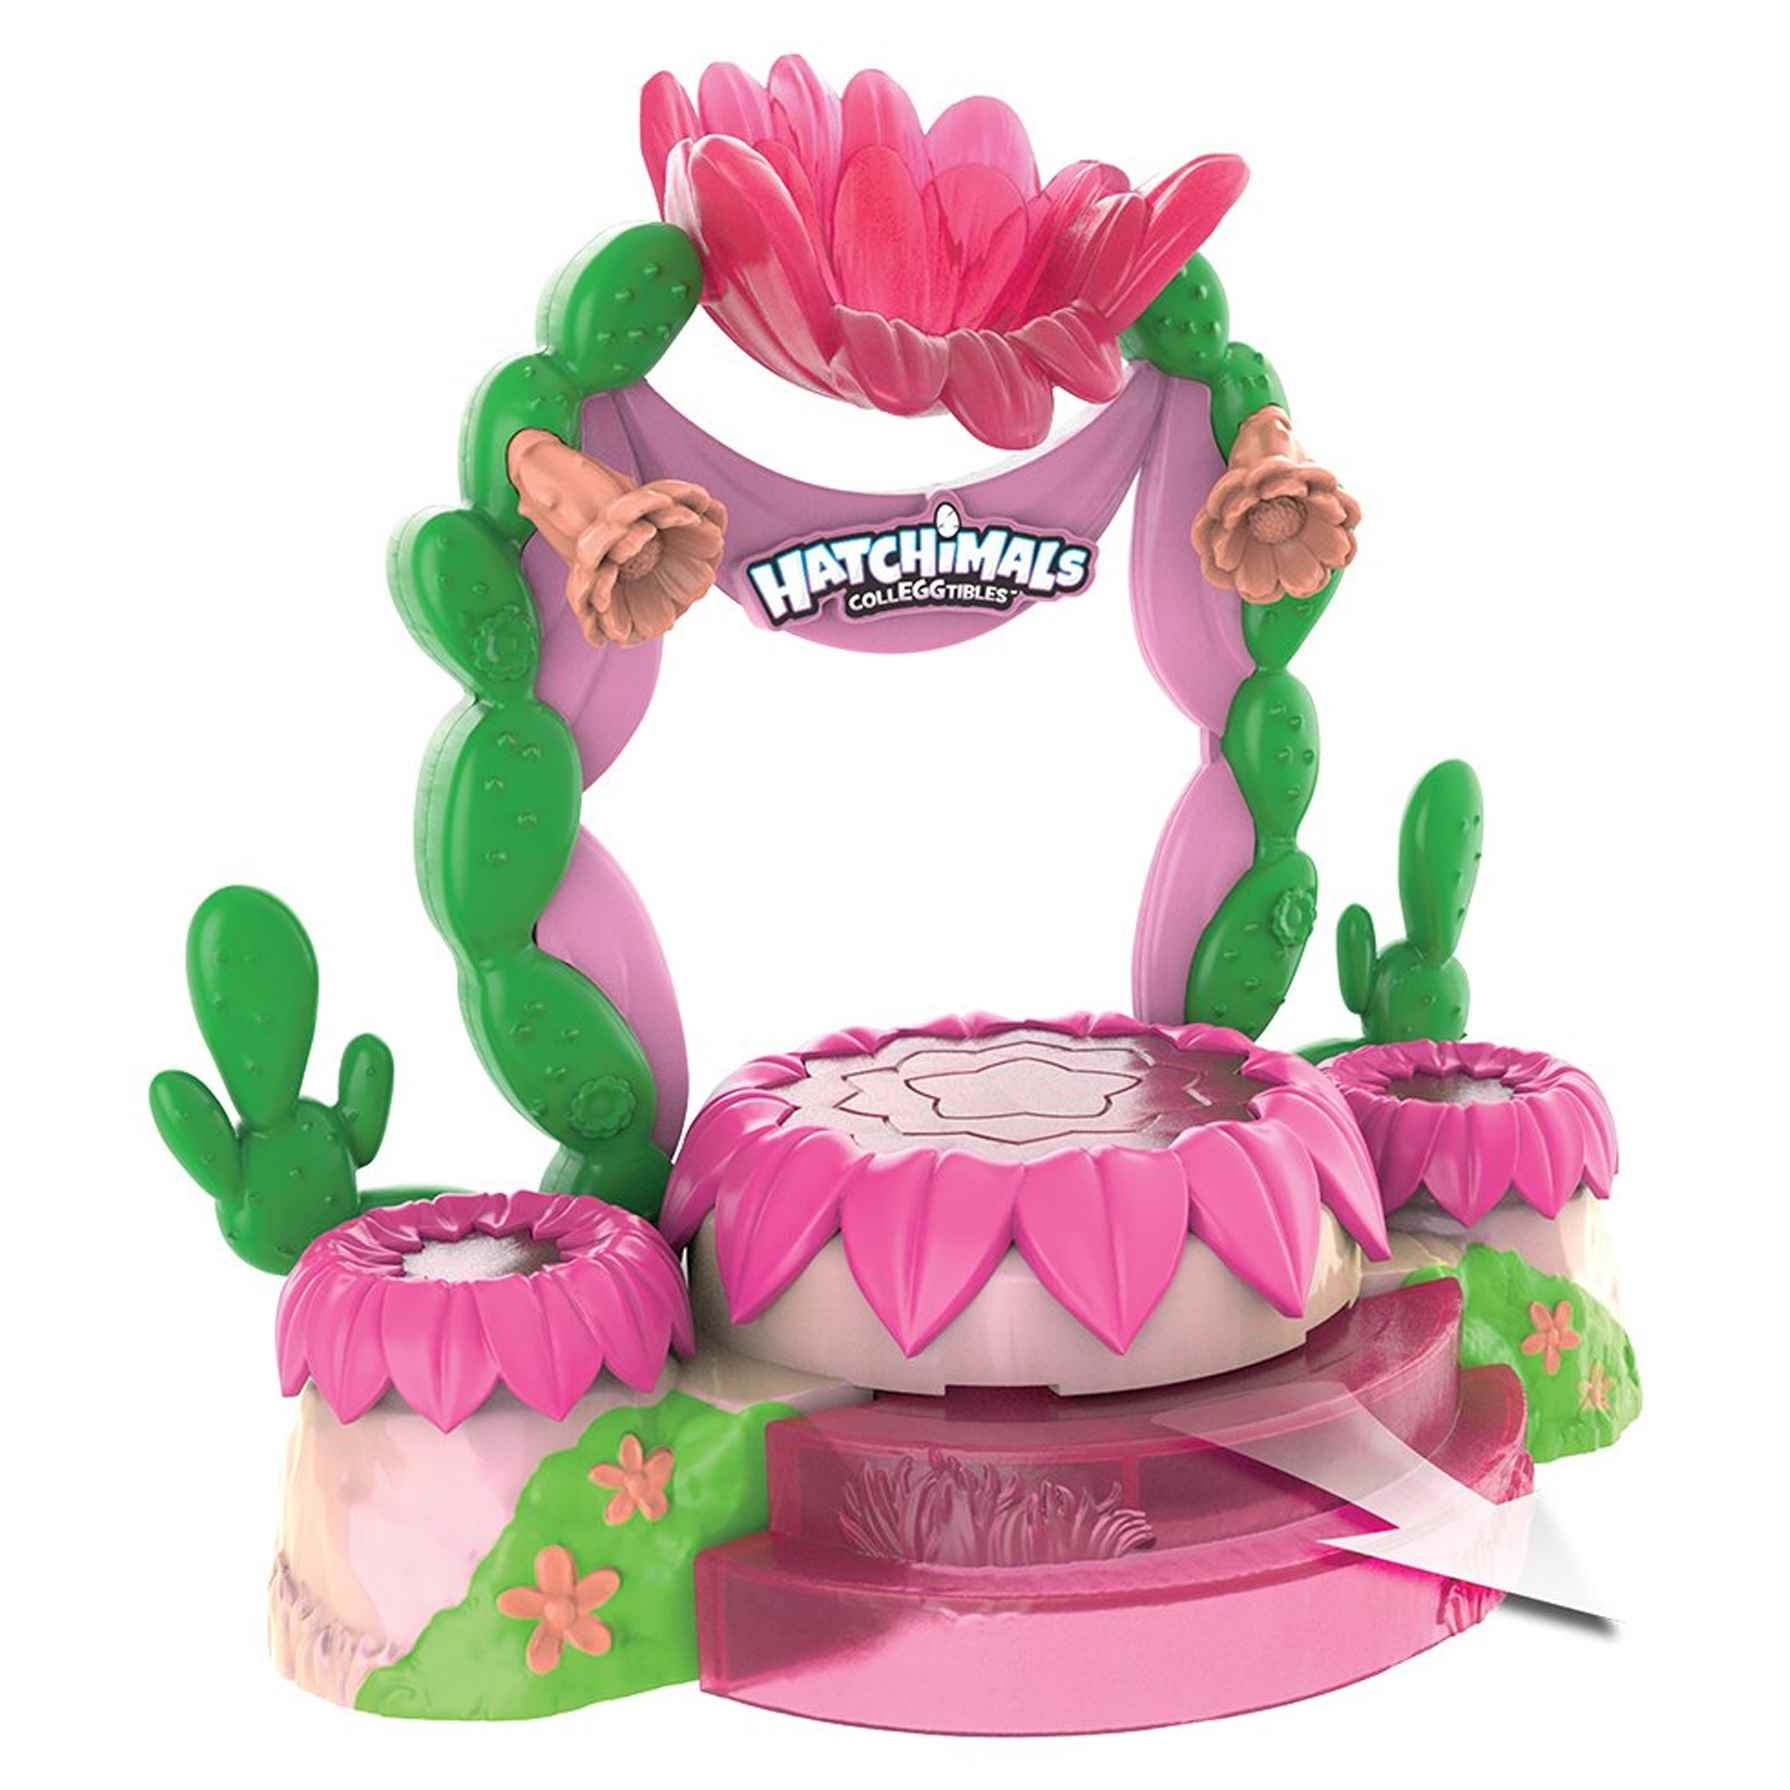 Hatchimals Operación Hatchimals Playset